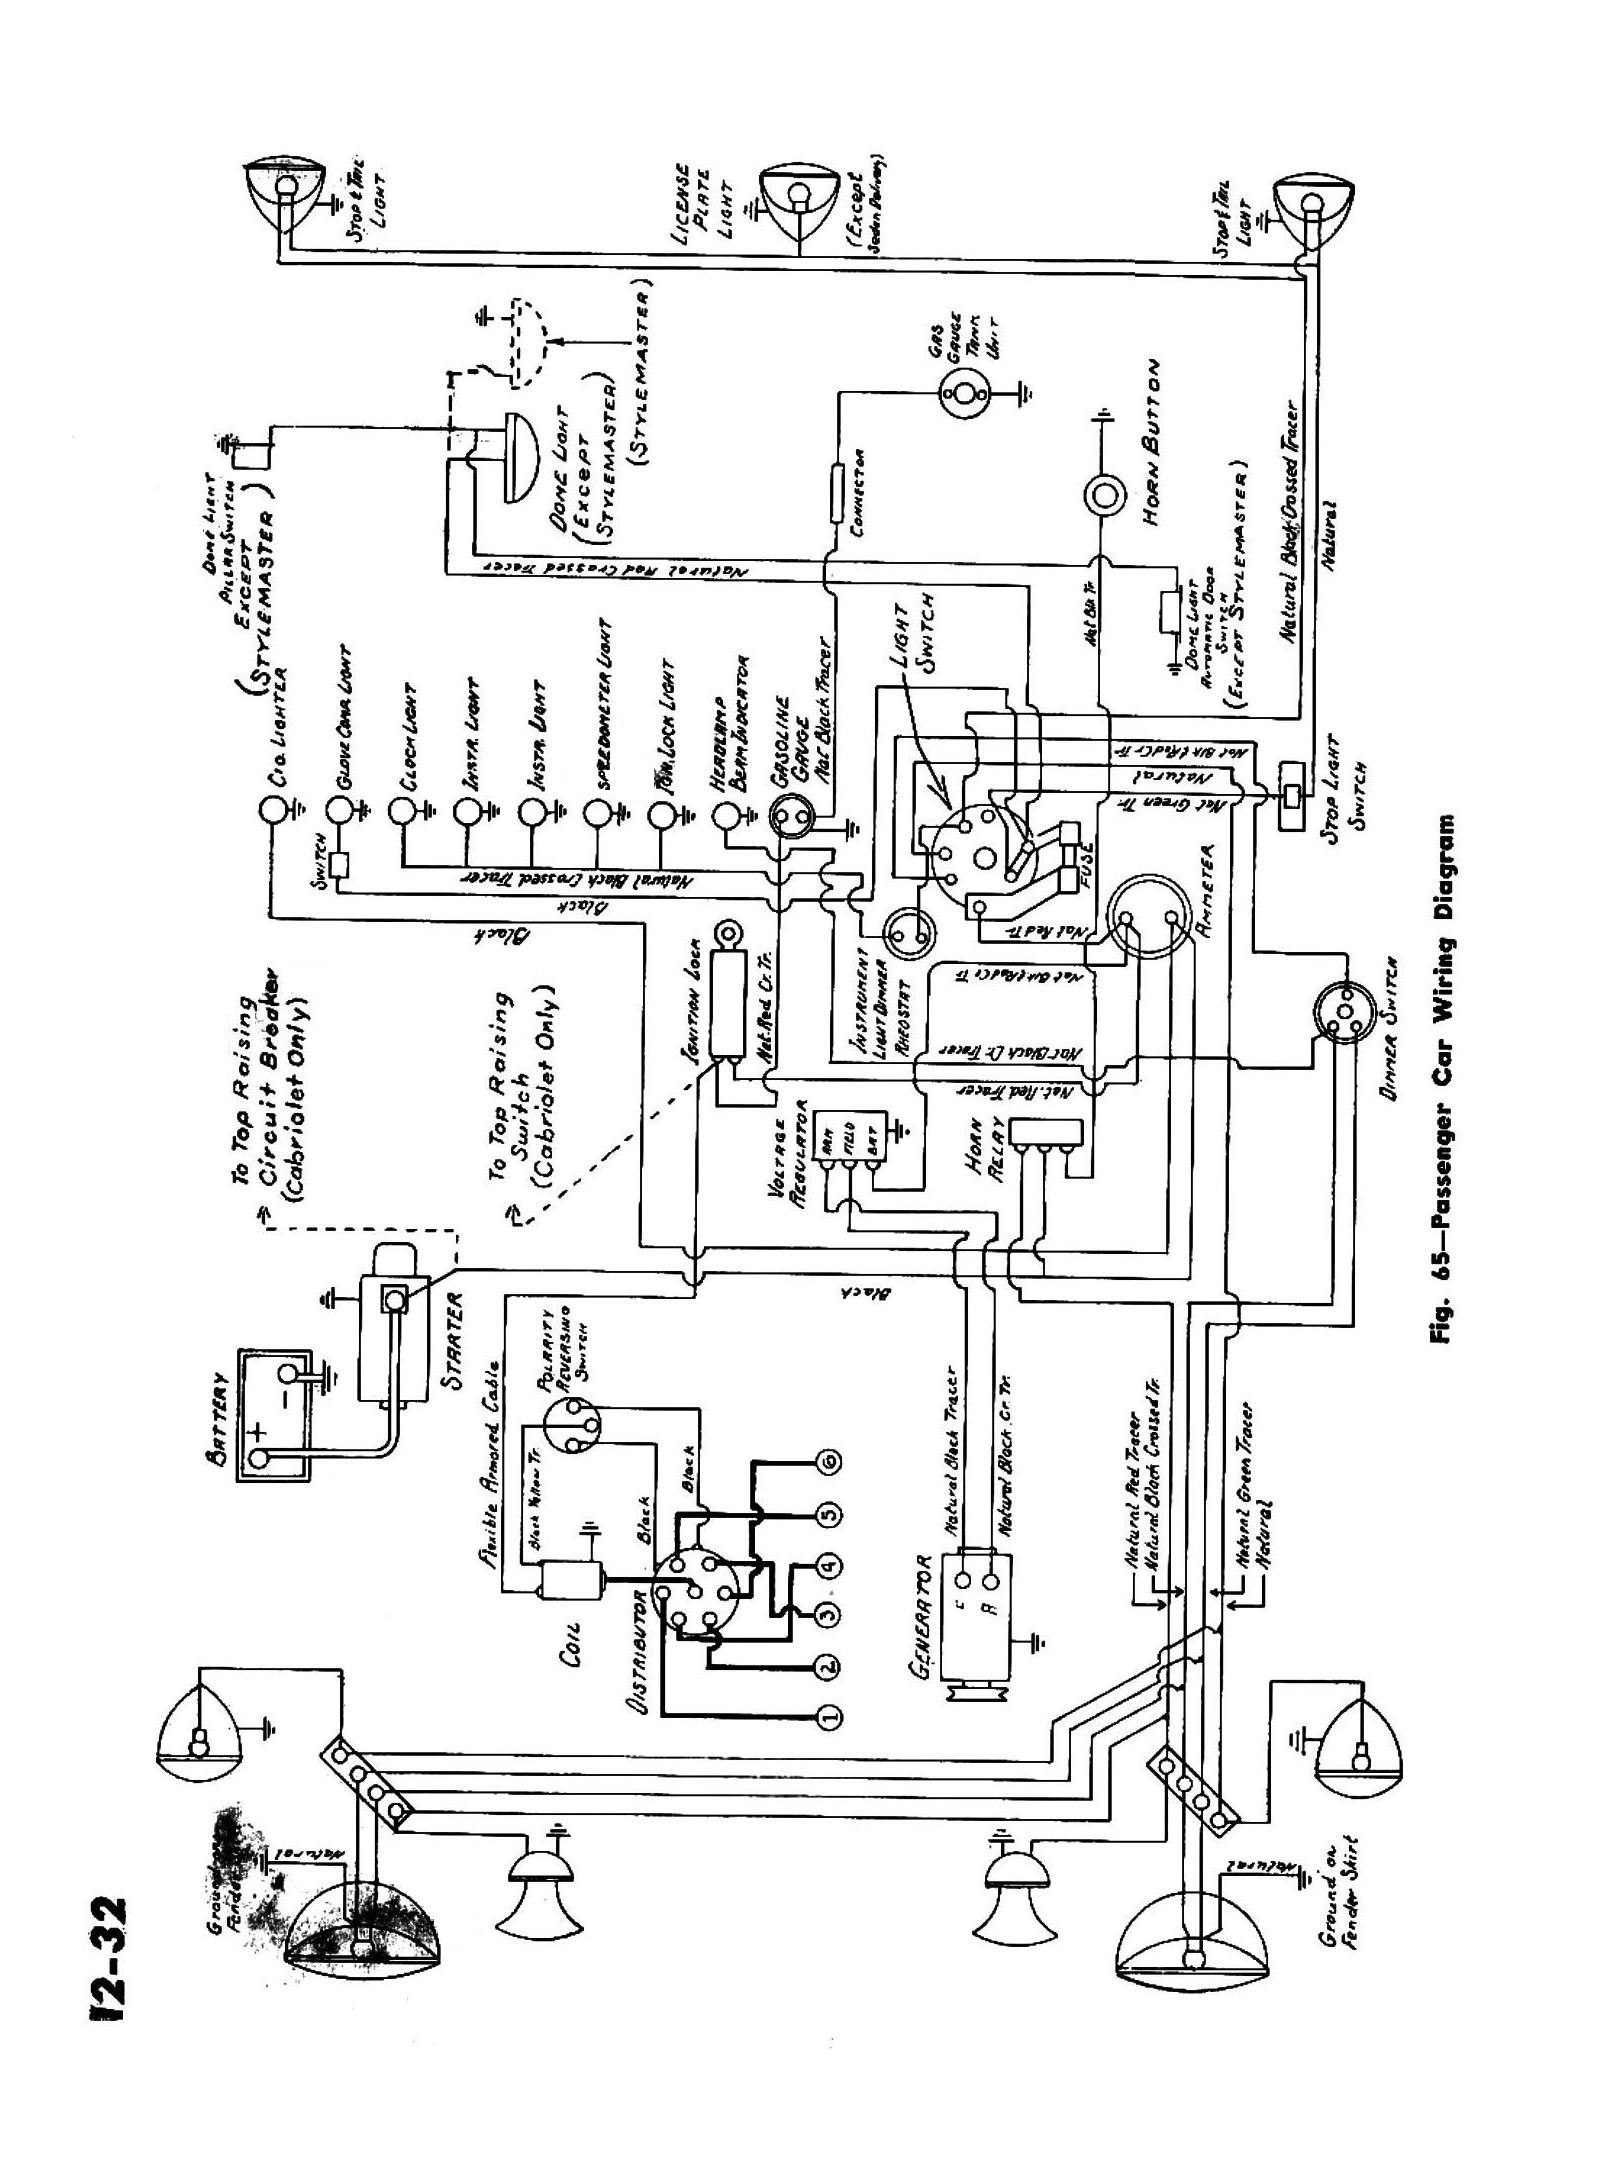 45car chevy wiring diagrams wiring diagrams for cars at bakdesigns.co